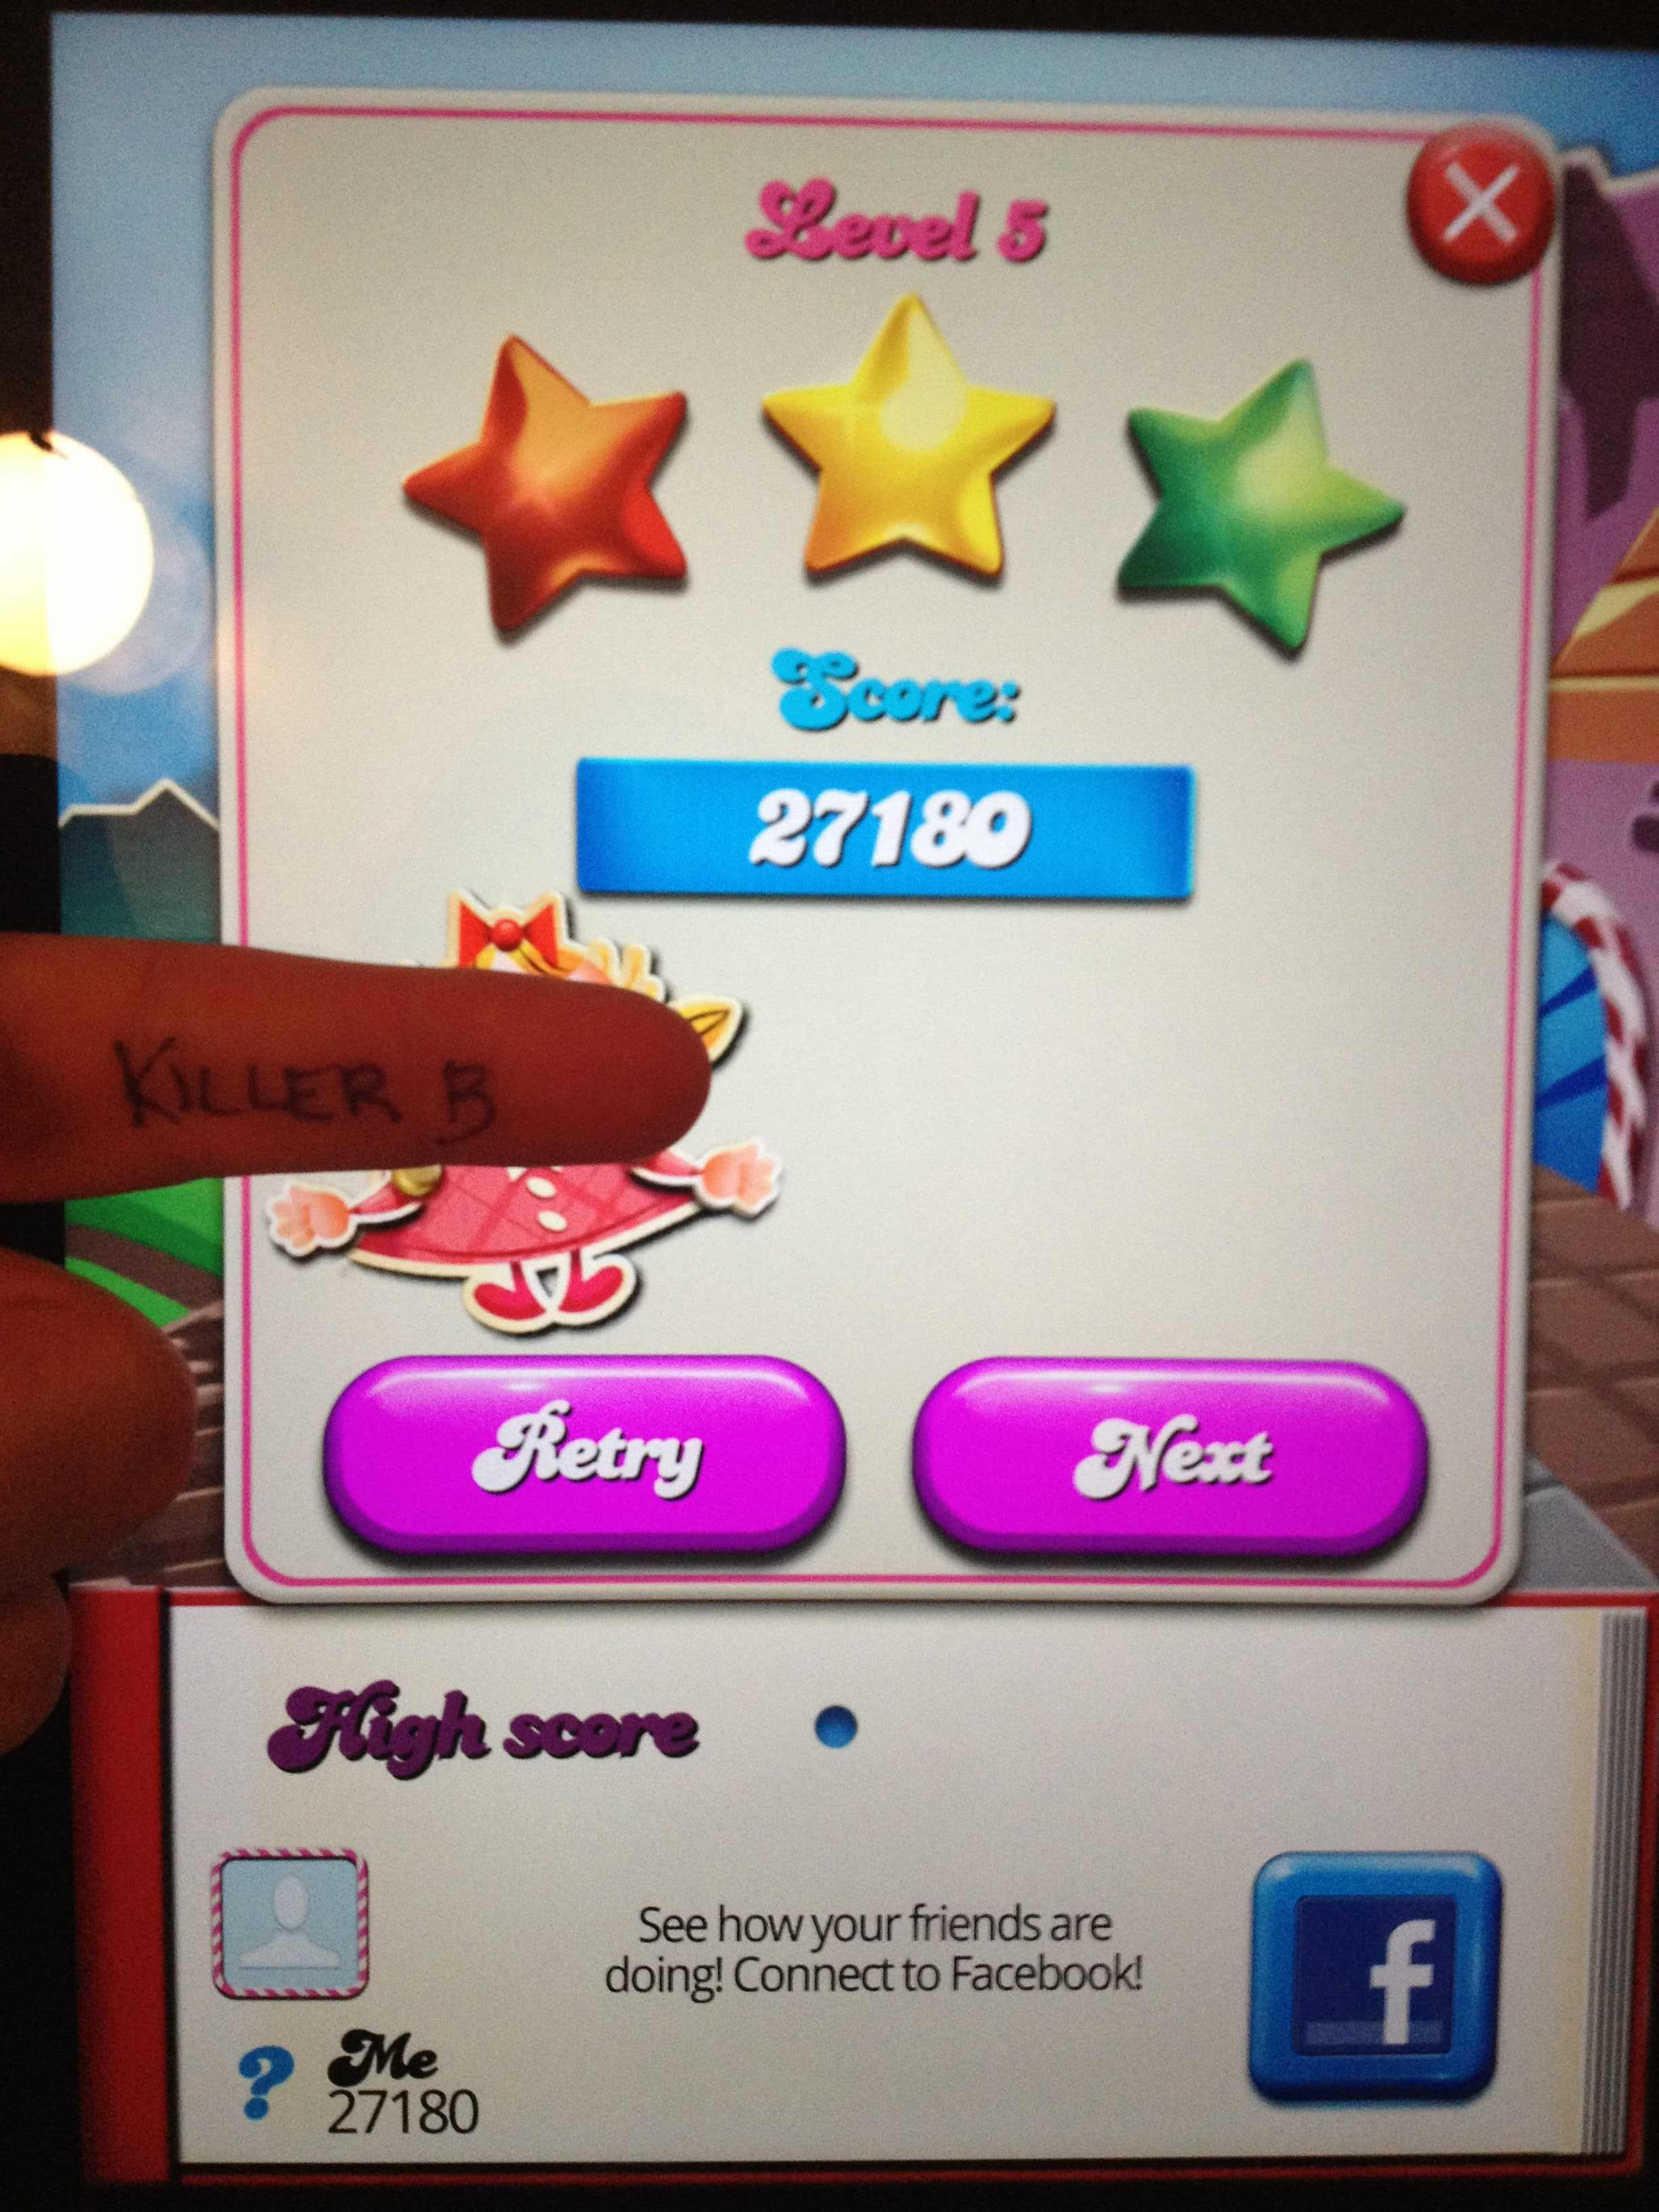 Candy Crush Saga: Level 005 27,180 points